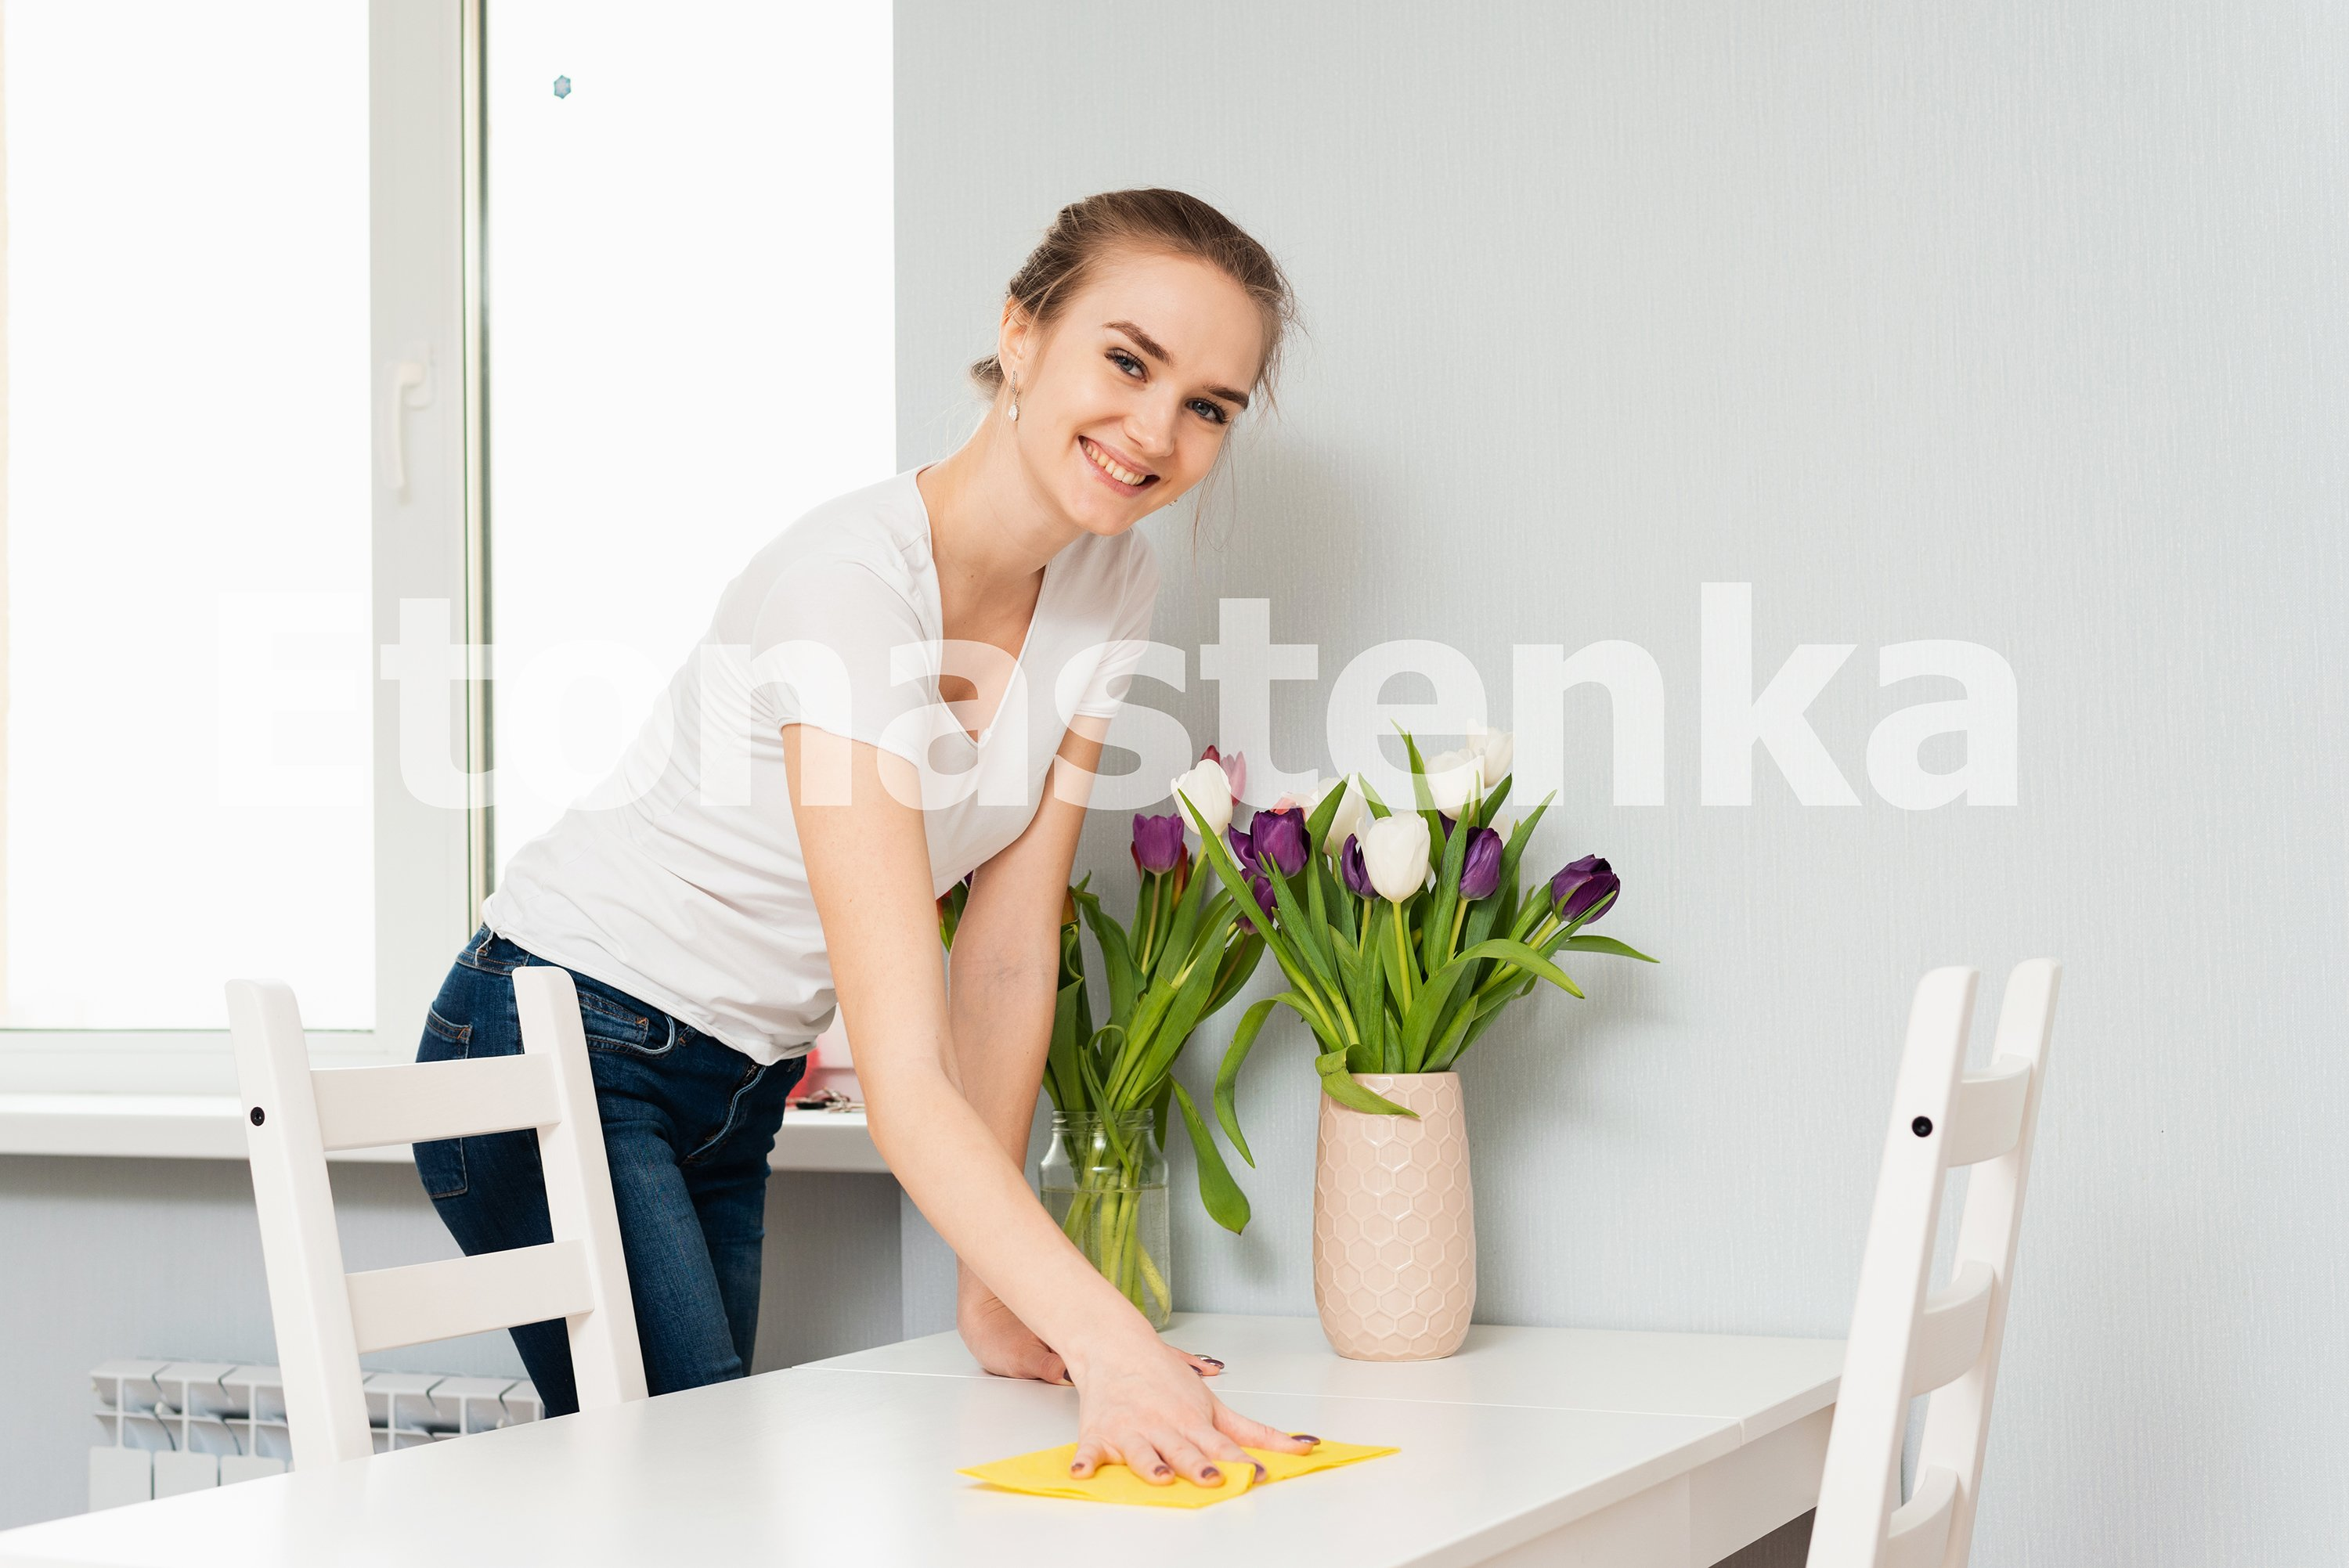 A cute blonde is smiling while cleaning her house example image 1